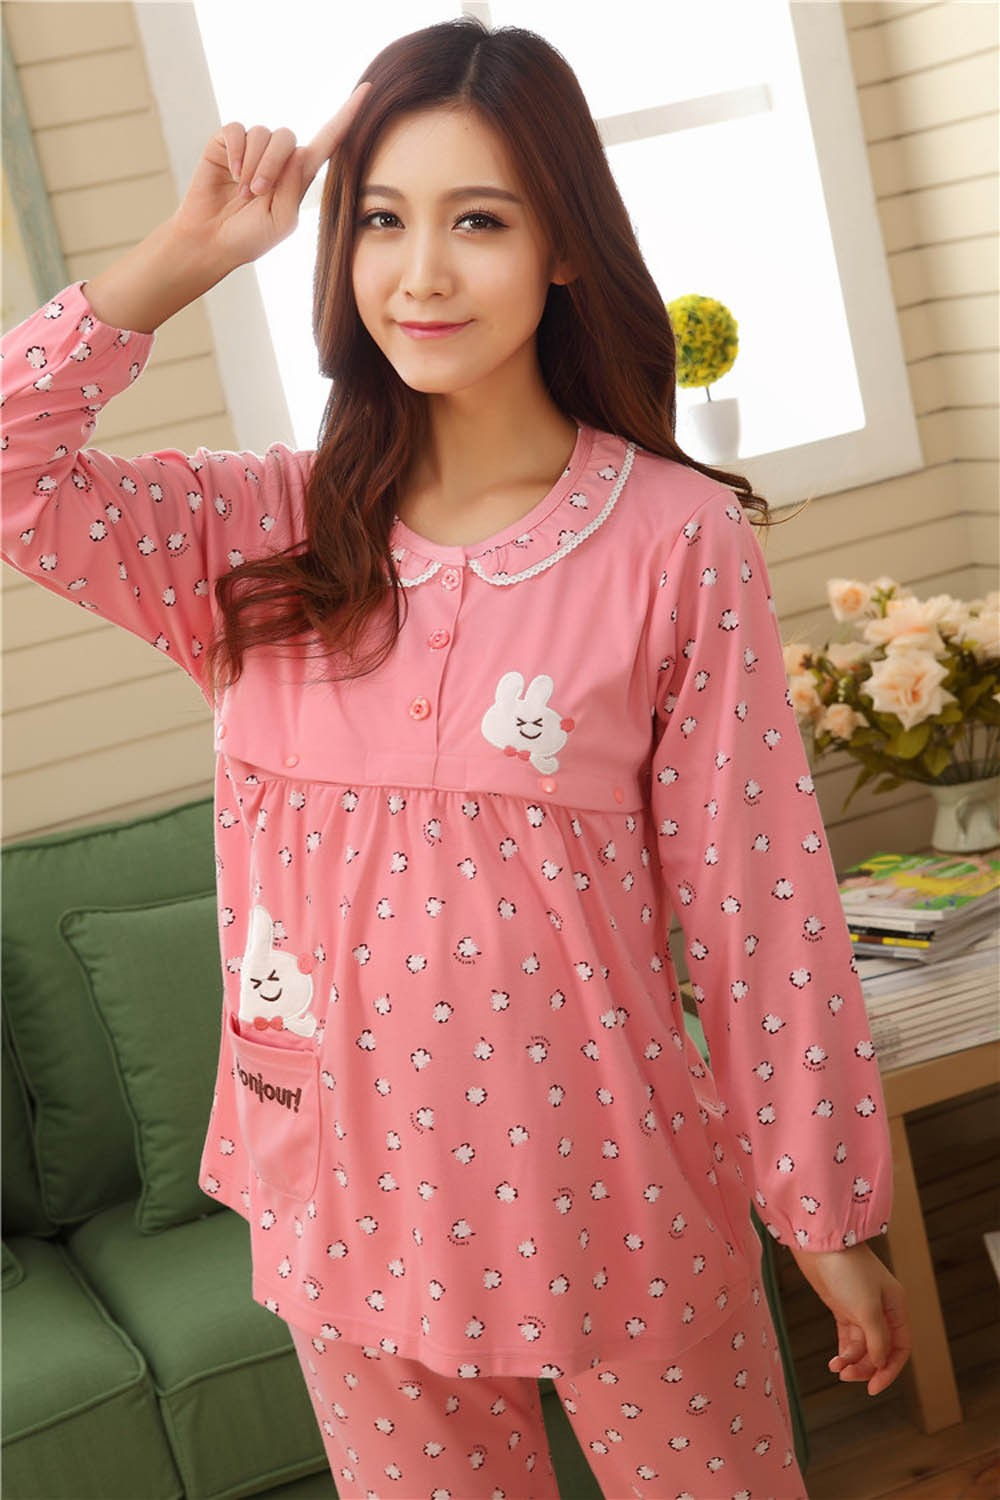 Pregnant-Woman-Pajamas-Postpartum-Breastfeeding-Month-Of-Serving-Lapel-Clothes-Long-sleeve-Sleepwear-Suits-CL0800 (12)